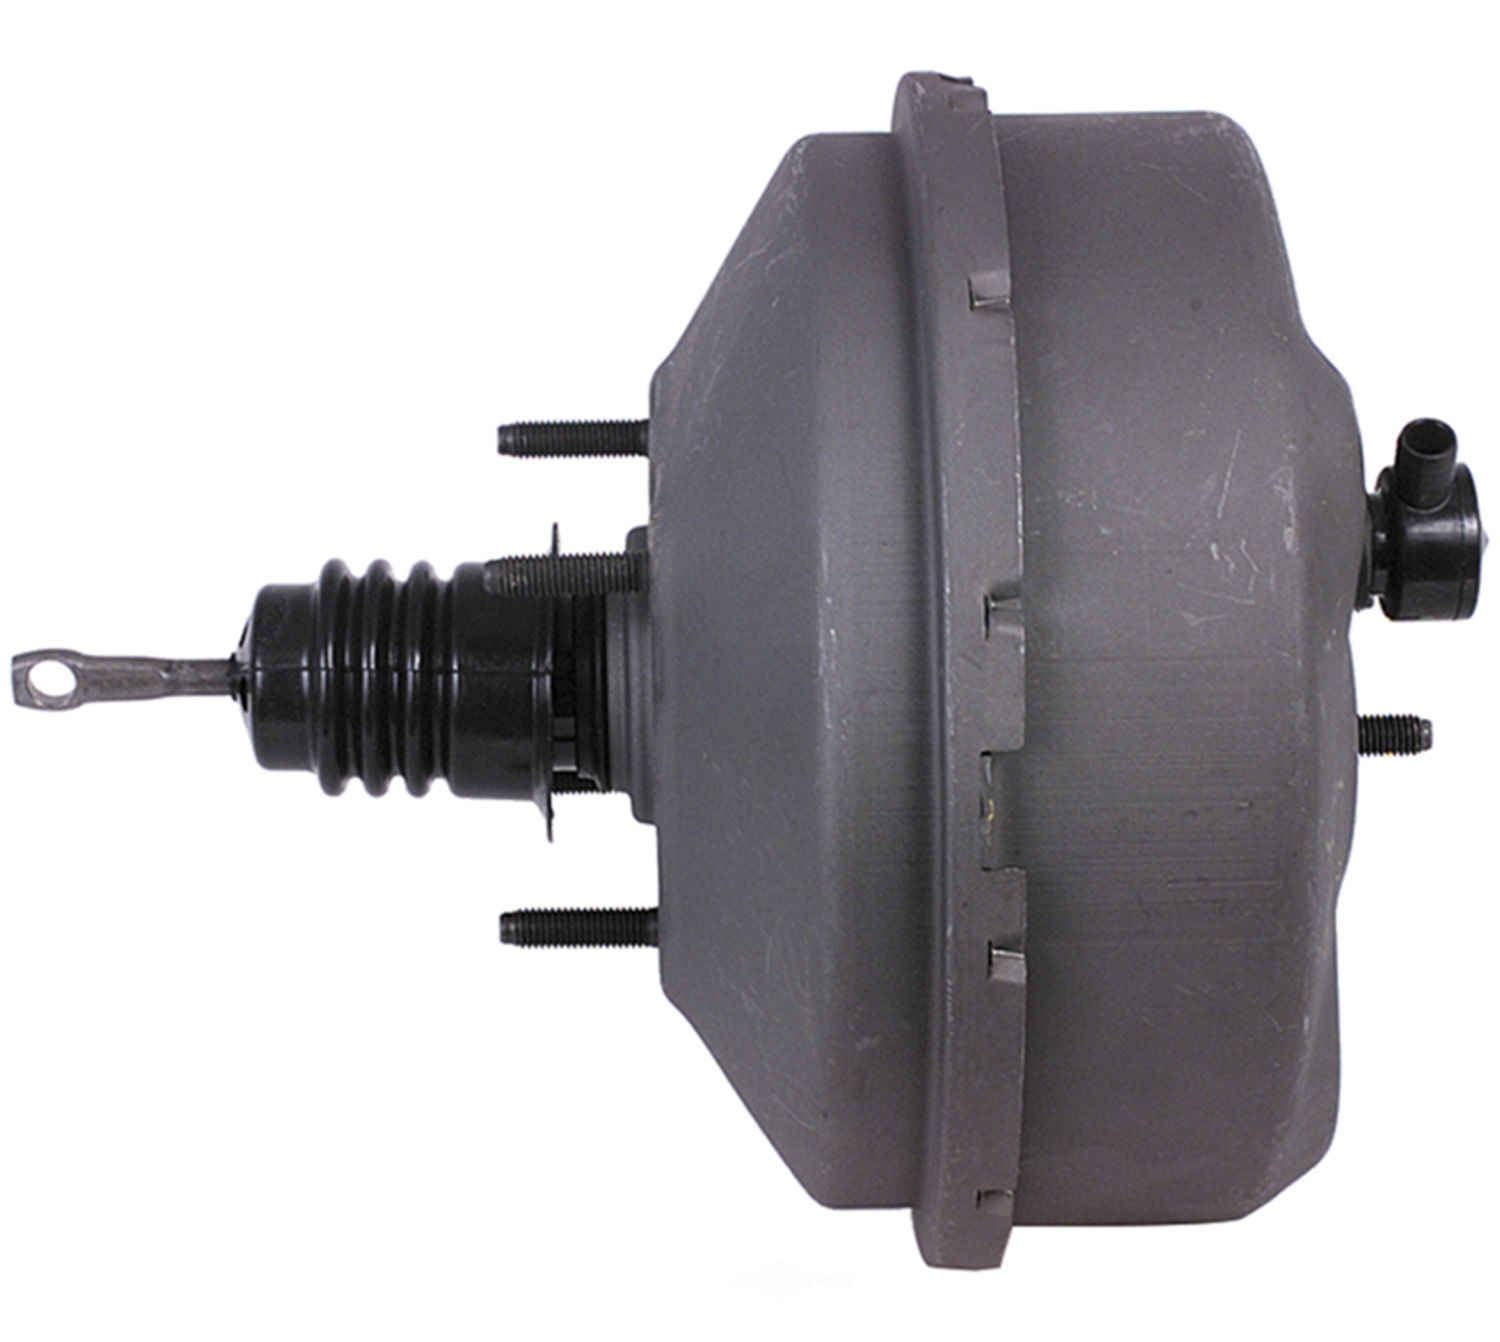 CARDONE/A-1 CARDONE - Remanufactured Vacuum Power Brake Booster w/o Master Cylinder - A1C 54-74827